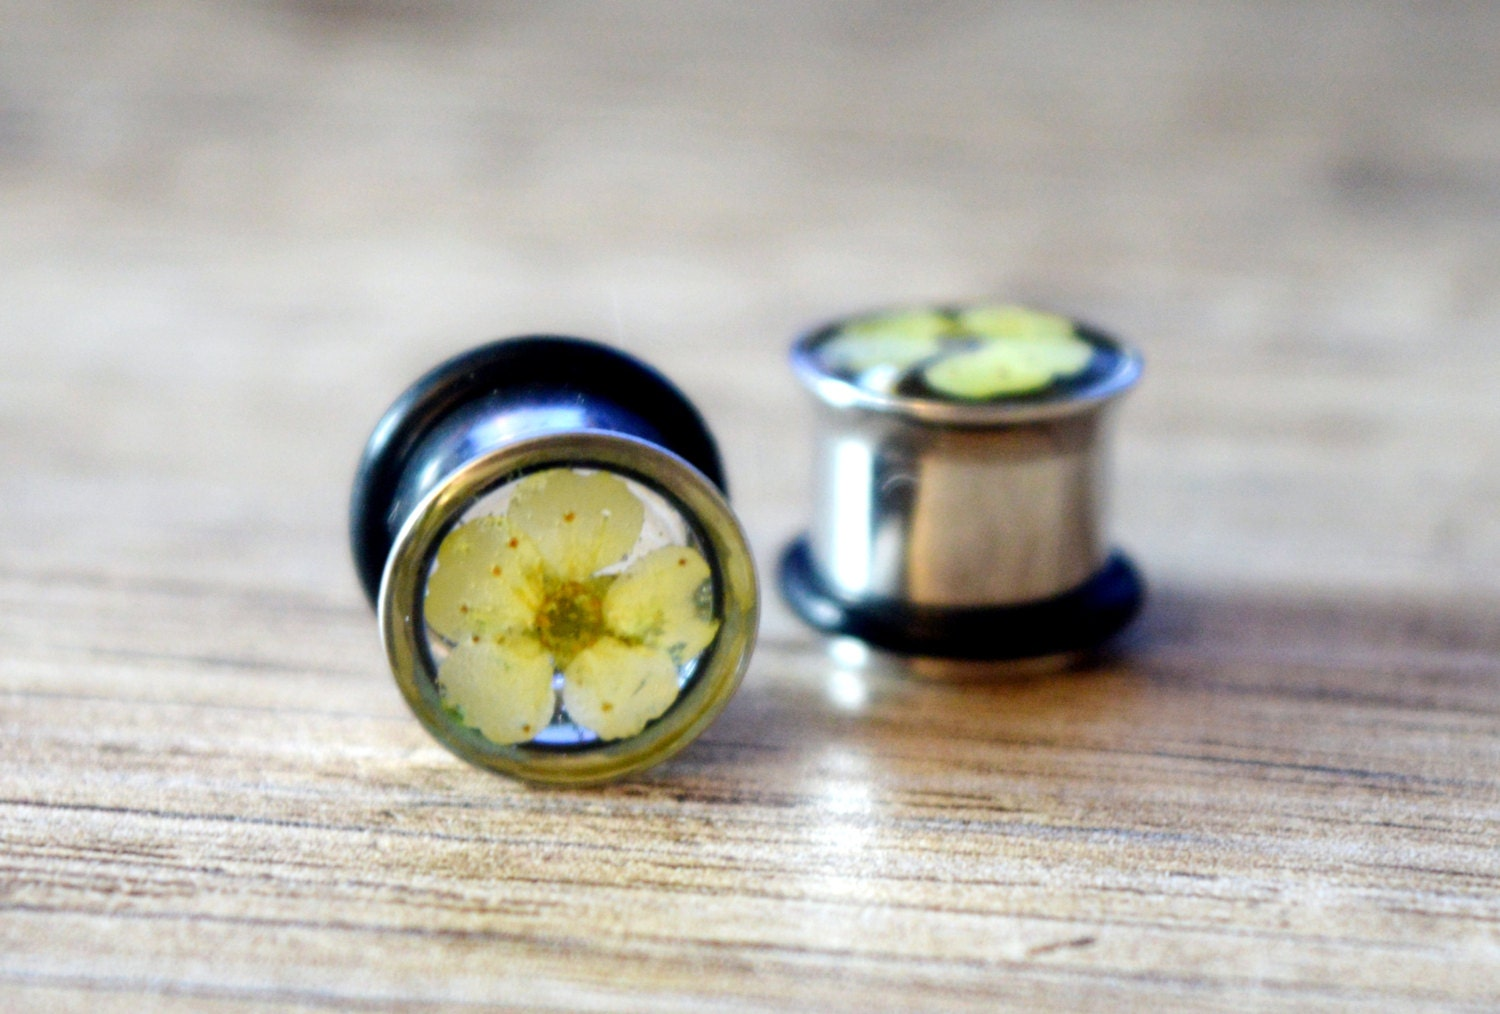 00g plugs 00 gauge earrings 10mm plugs real flower plugs ear